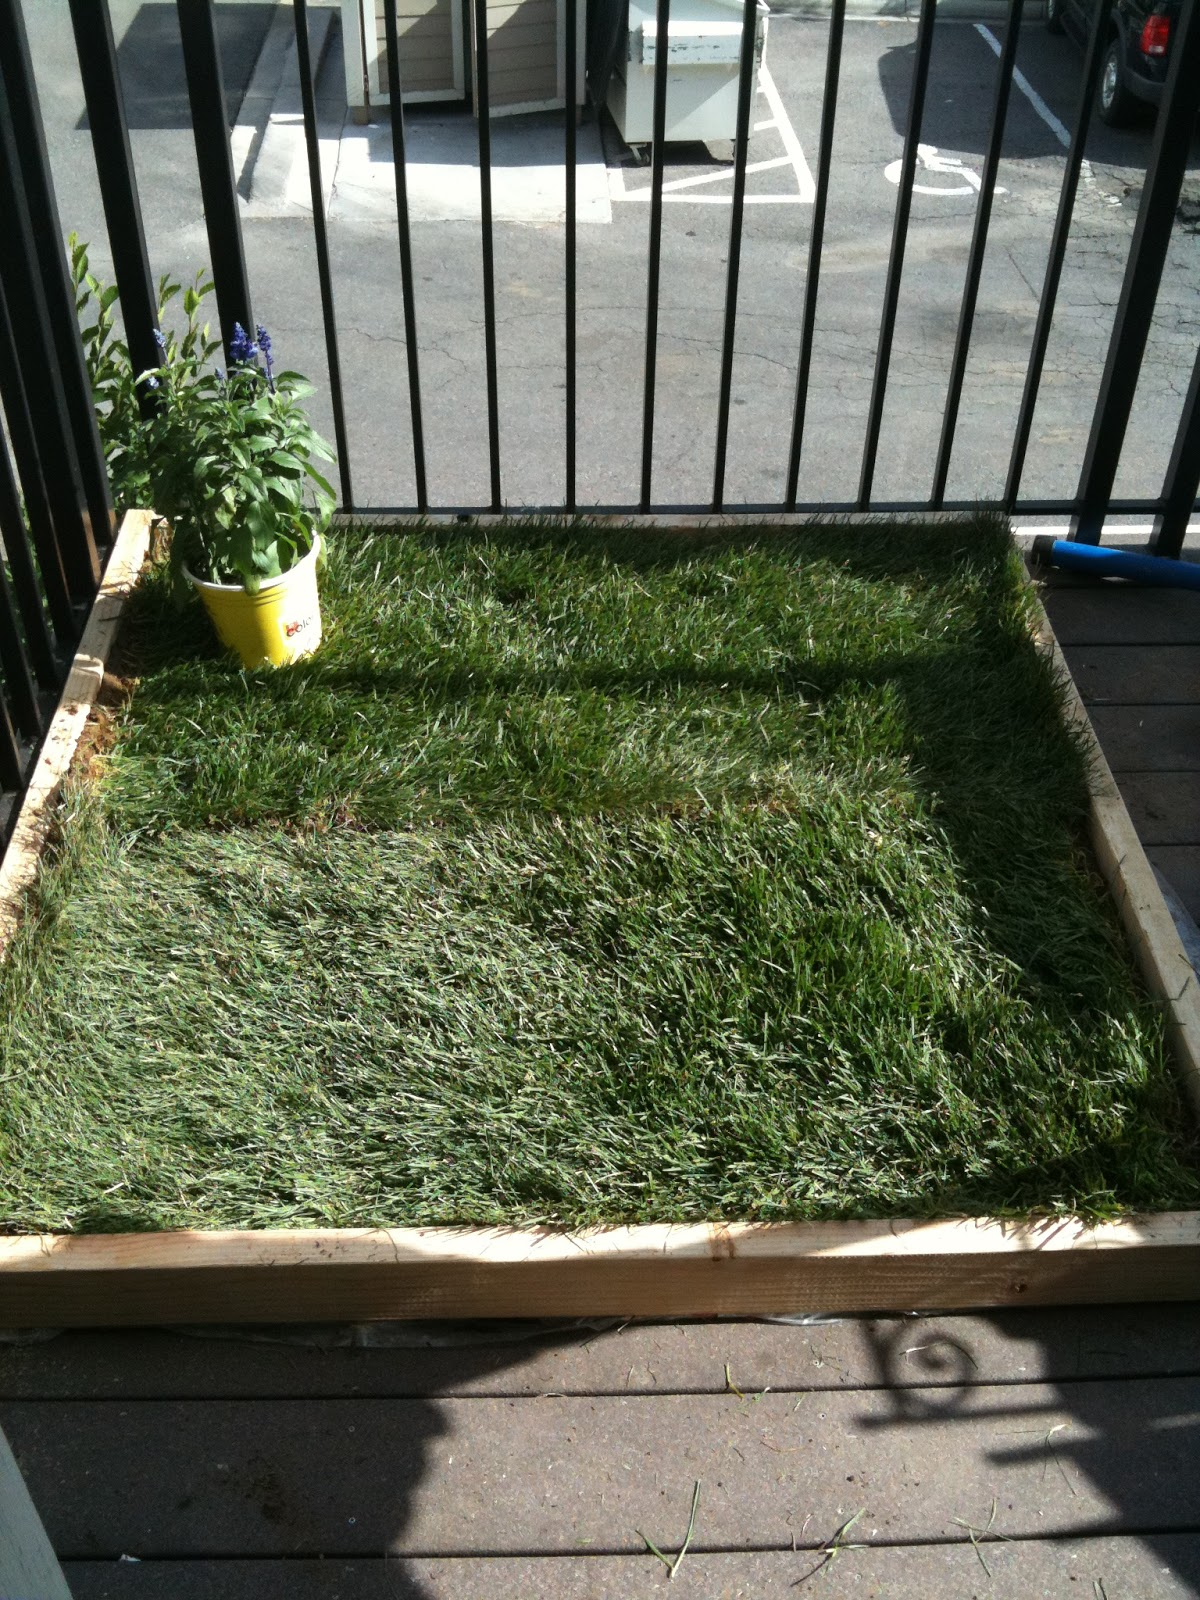 super dog charlie pants and me: Dog Potty for Patio: Build ...